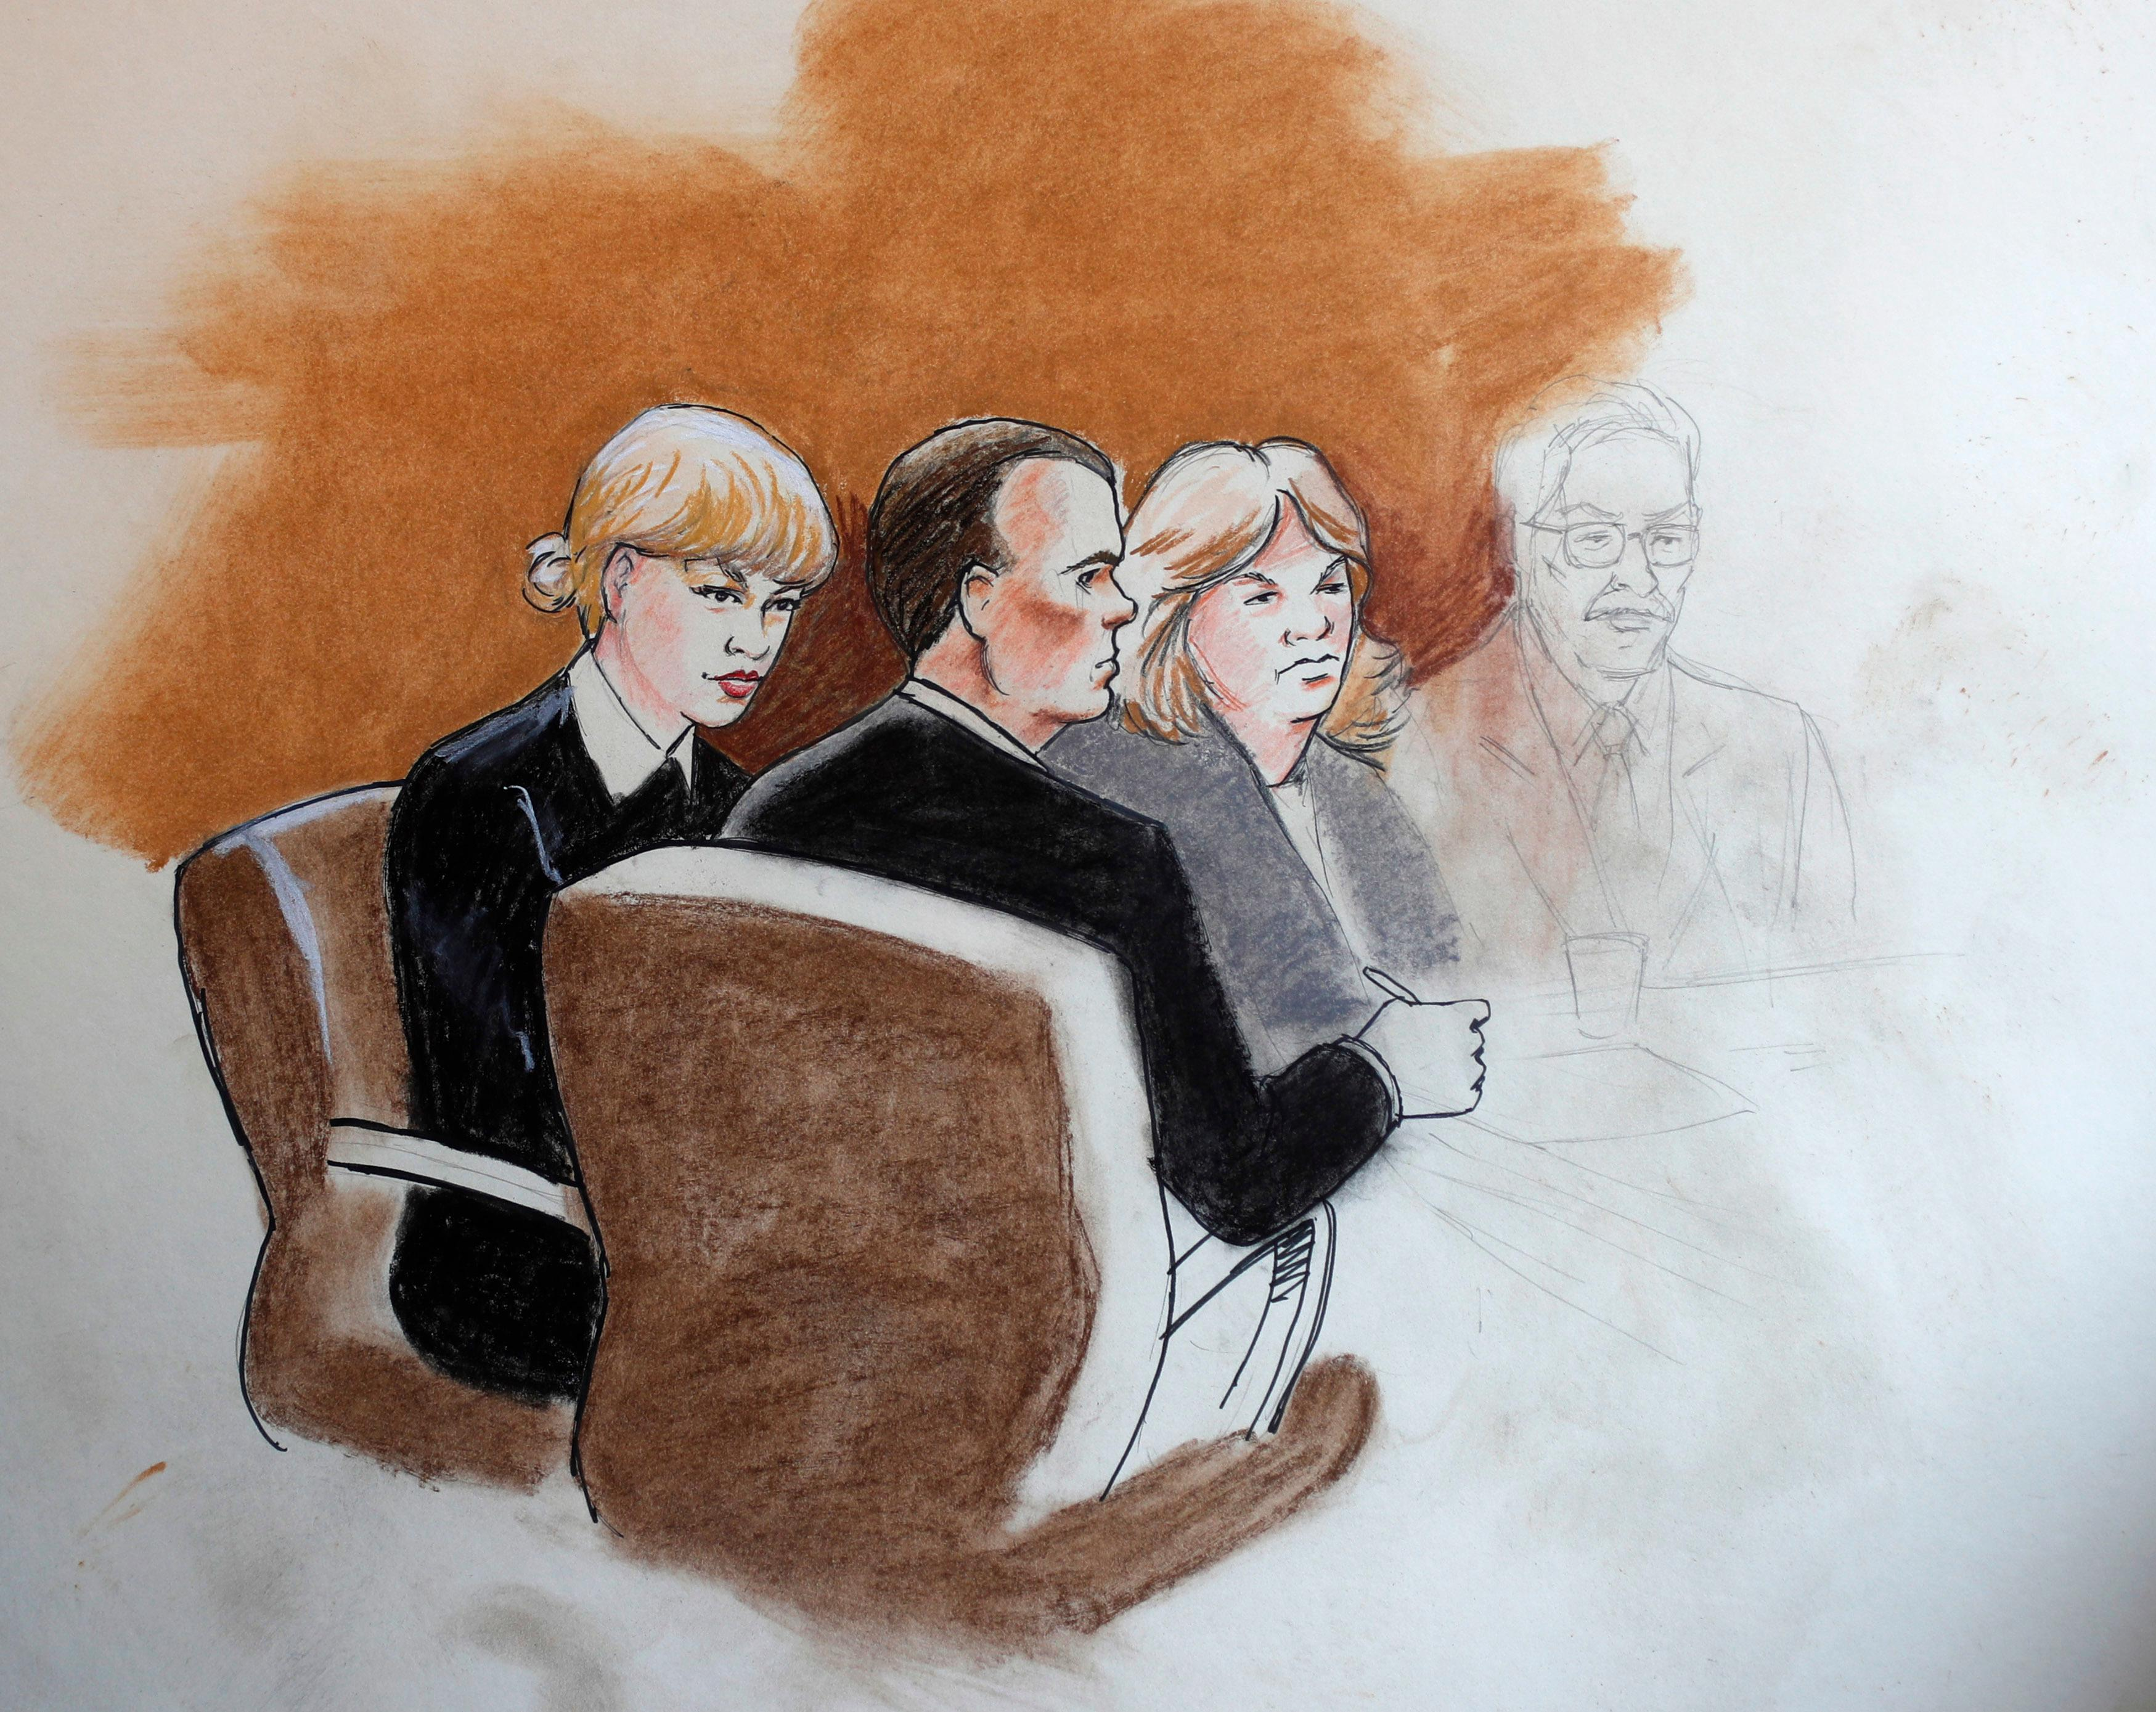 In this courtroom sketch, pop singer Taylor Swift, left, appears with her lawyer and mother in federal court Tuesday, Aug. 8, 2017, in Denver. Swift alleges that radio host David Mueller touched her during a concert meet-and-greet in 2013. The case went to court after Mueller sued Swift, claiming her false accusation cost him his job. He is seeking at least $3 million in damages. Swift countersued, claiming sexual assault. (AP Photo/Jeff Kandyba)